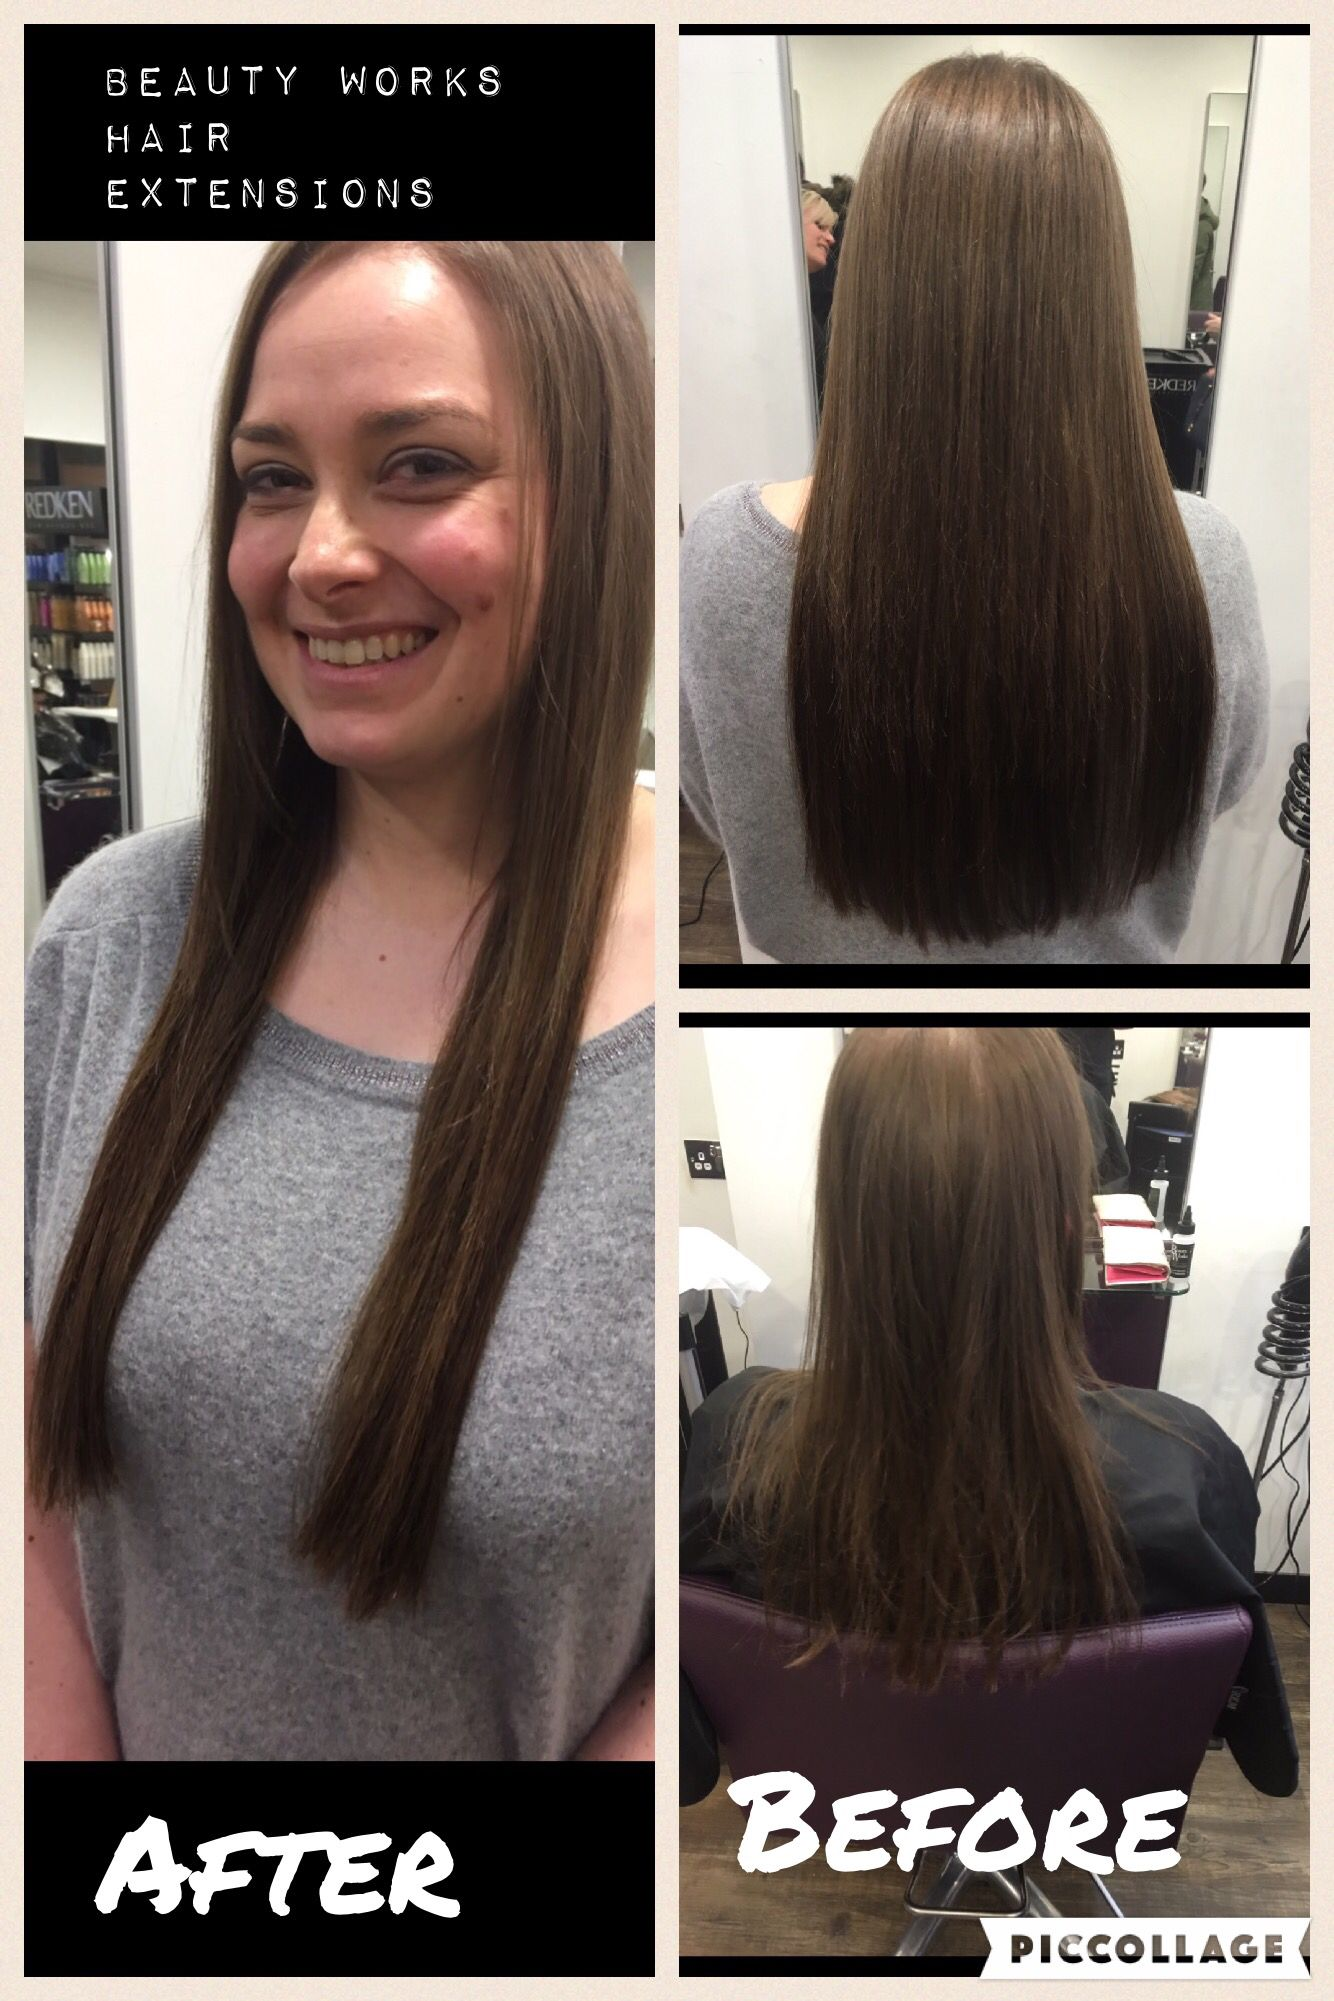 Beauty Works Hair Extensions For Length And Thickness Hair I Have